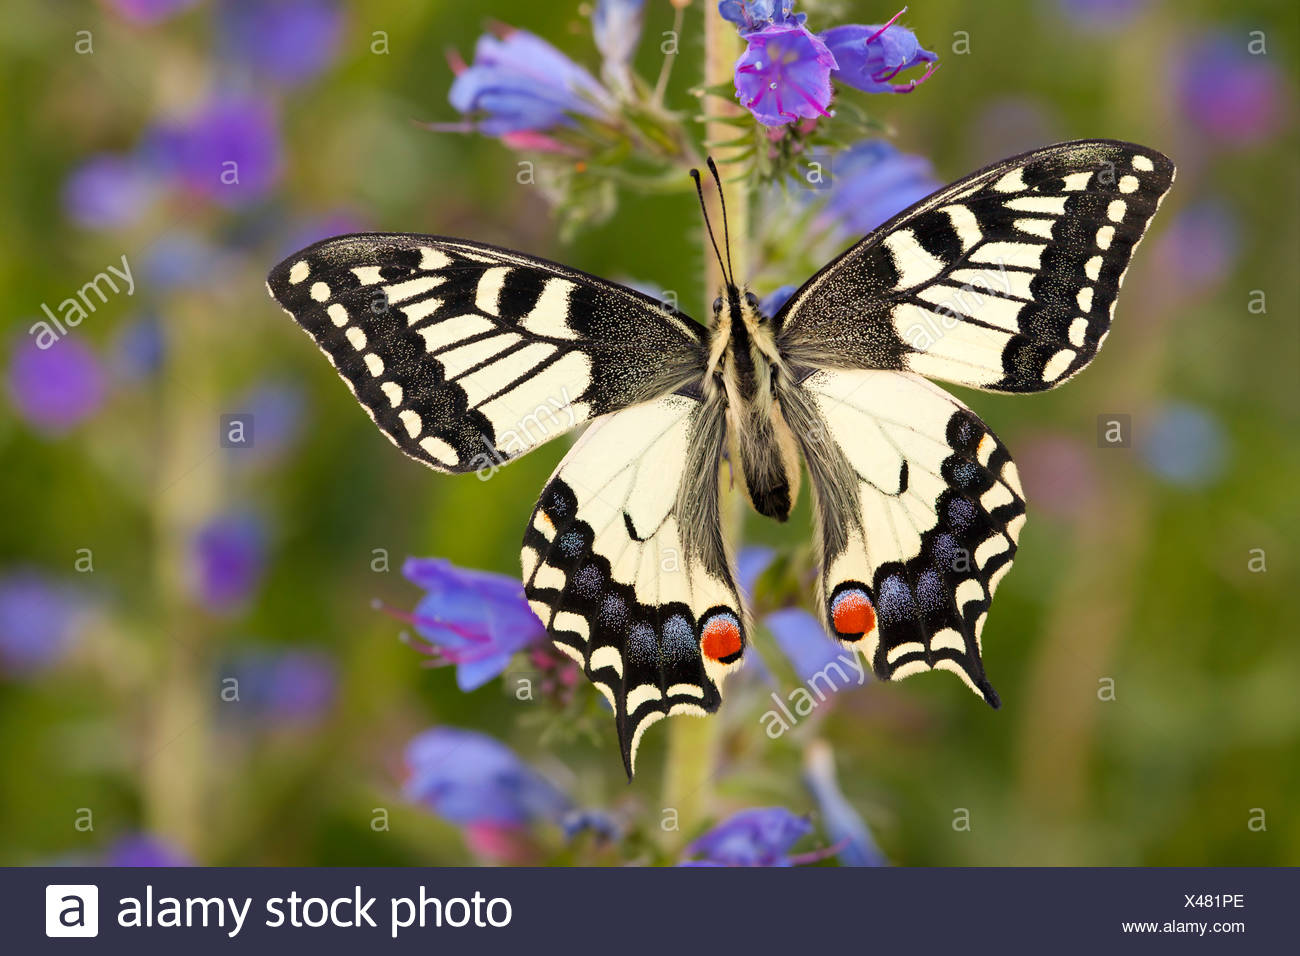 Common Swallowtail butterfly feeding on Viper's Bugloss / Blueweed in alpine meadow. Nordtirol, Tirol, Austrian Alps - Stock Image